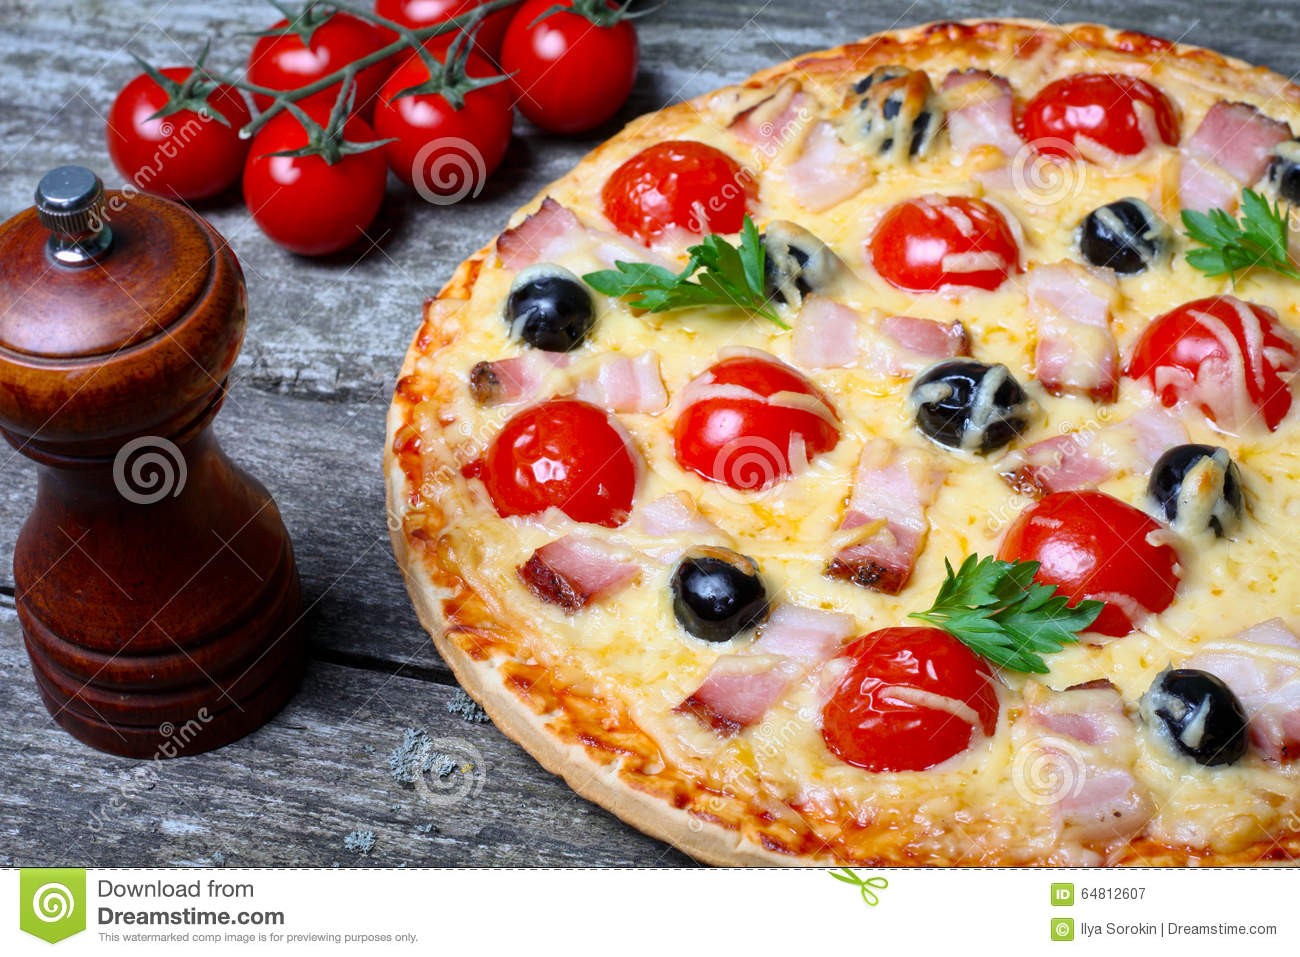 Pizza With Bacon, Olives And Tomato Stock Photo - Image: 64812607